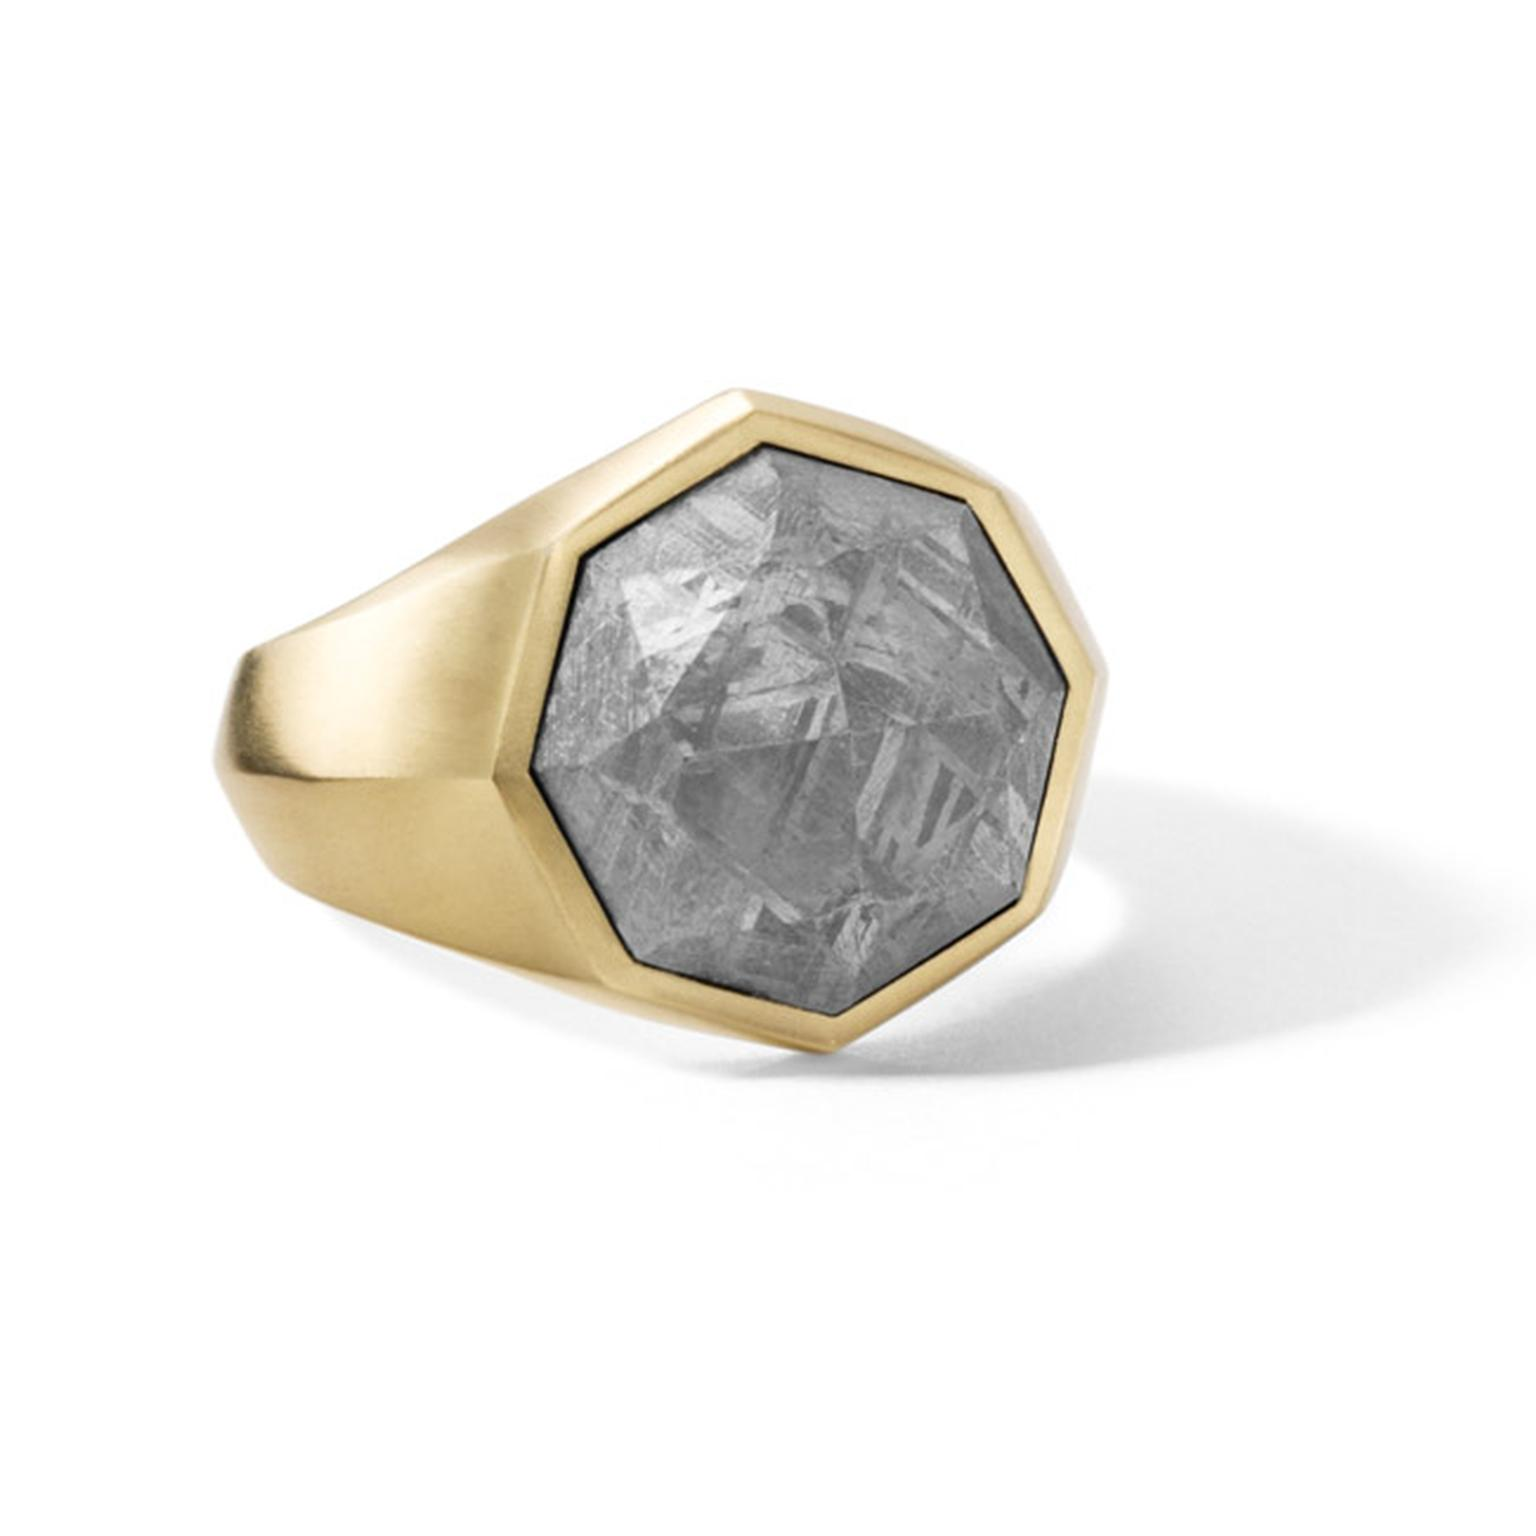 David-Yurman-Meteorite-ring-main